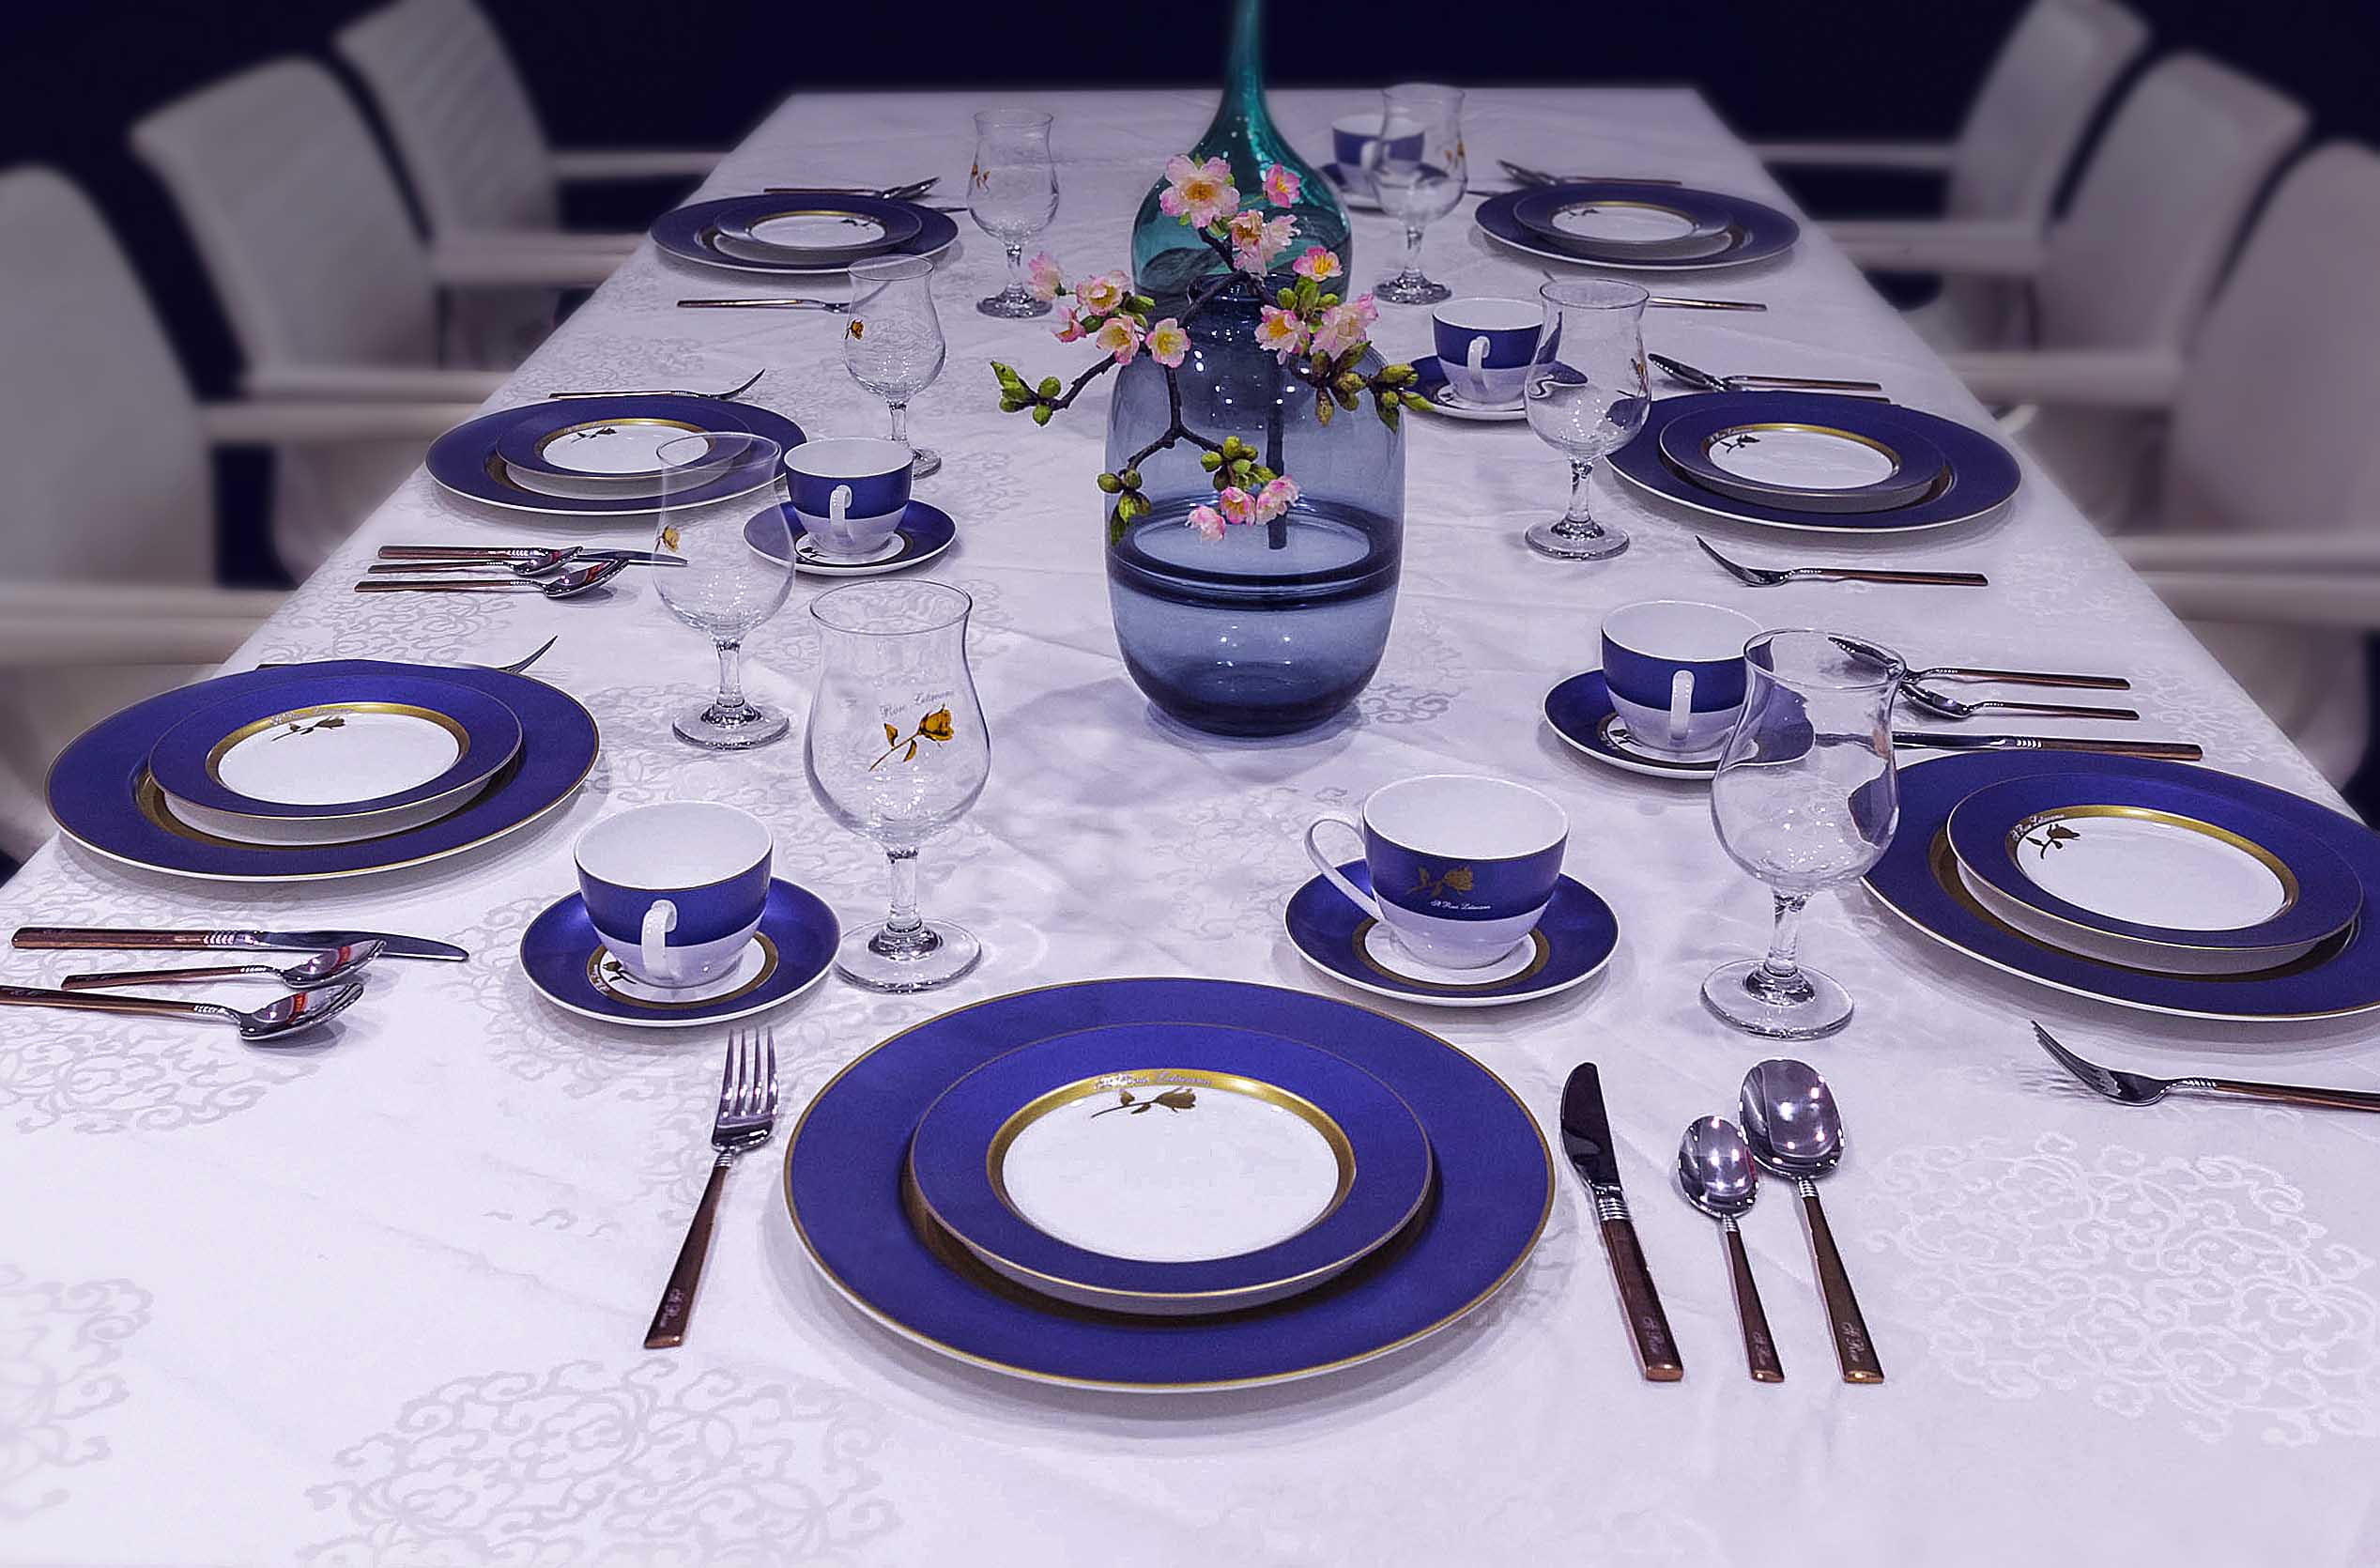 Two Eight-The Story of Gold Rose With Blue Rim on the ceramic dinnerware set - dinnerware designing-7